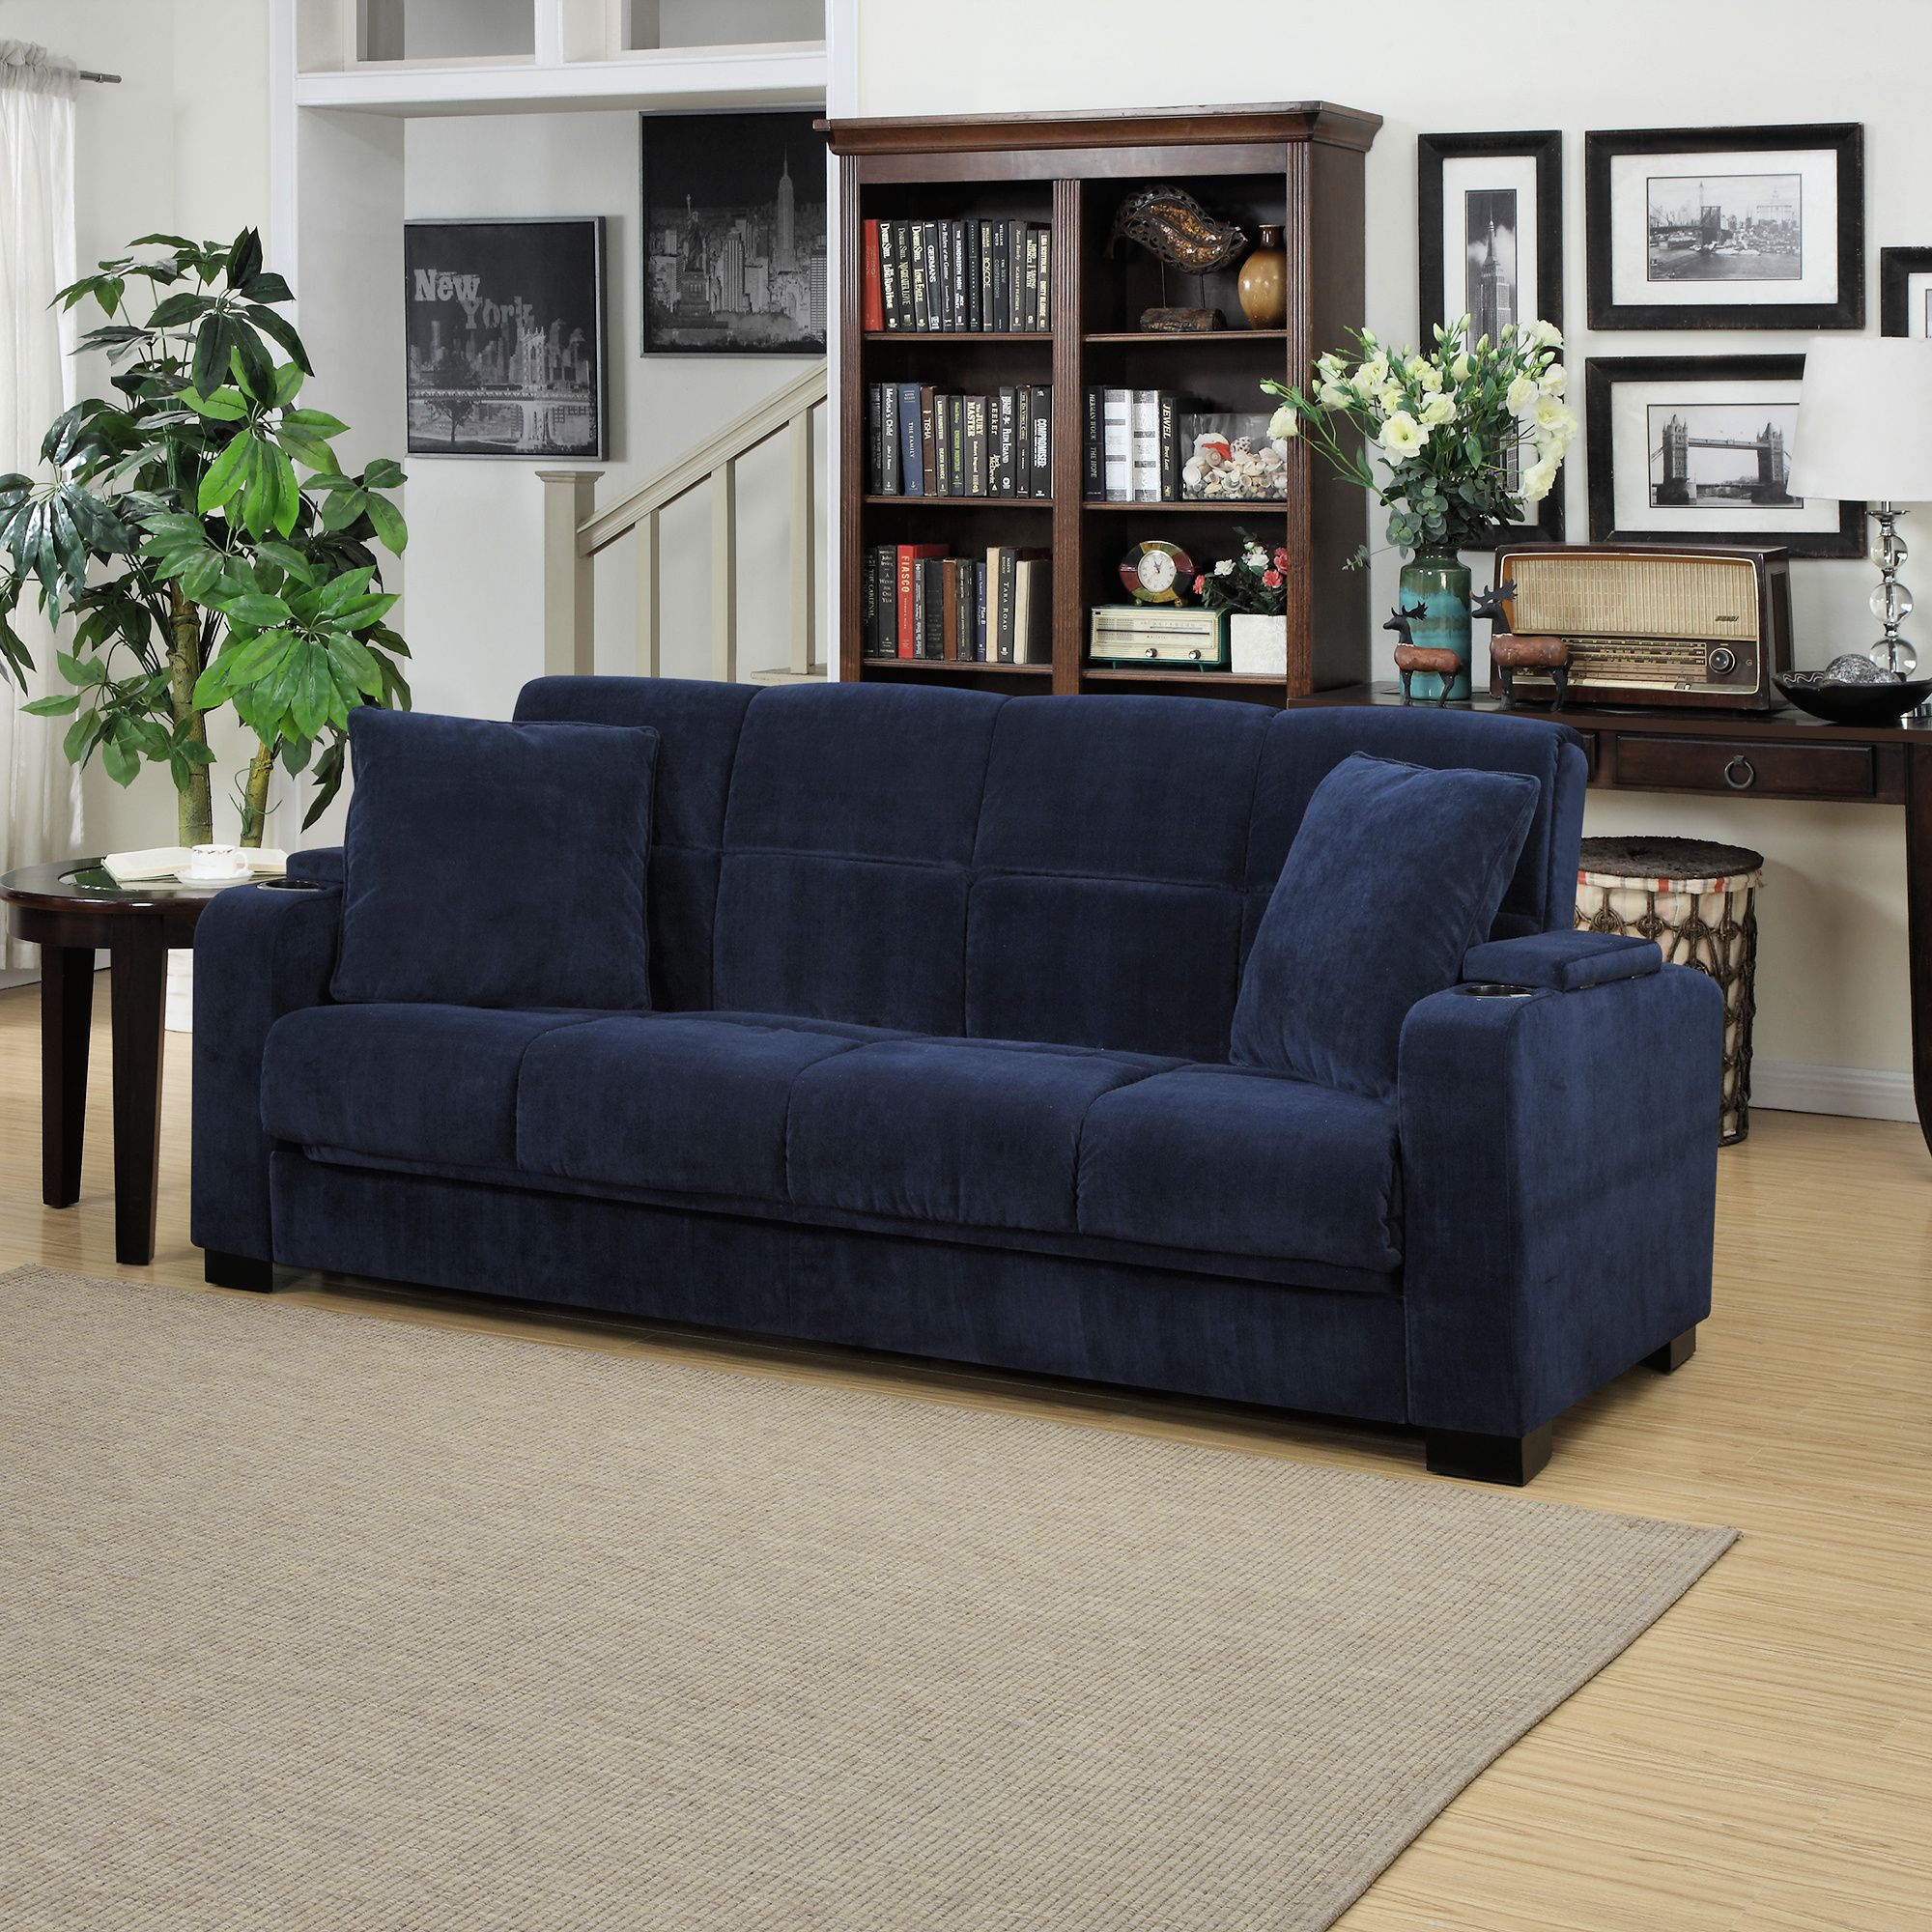 Blue Velvet In A Sleeper Sofa Yes Please Consider Adding The Style Points And Functionality Of This Piece To Your Basement R Couch Storage Handy Living Sofa